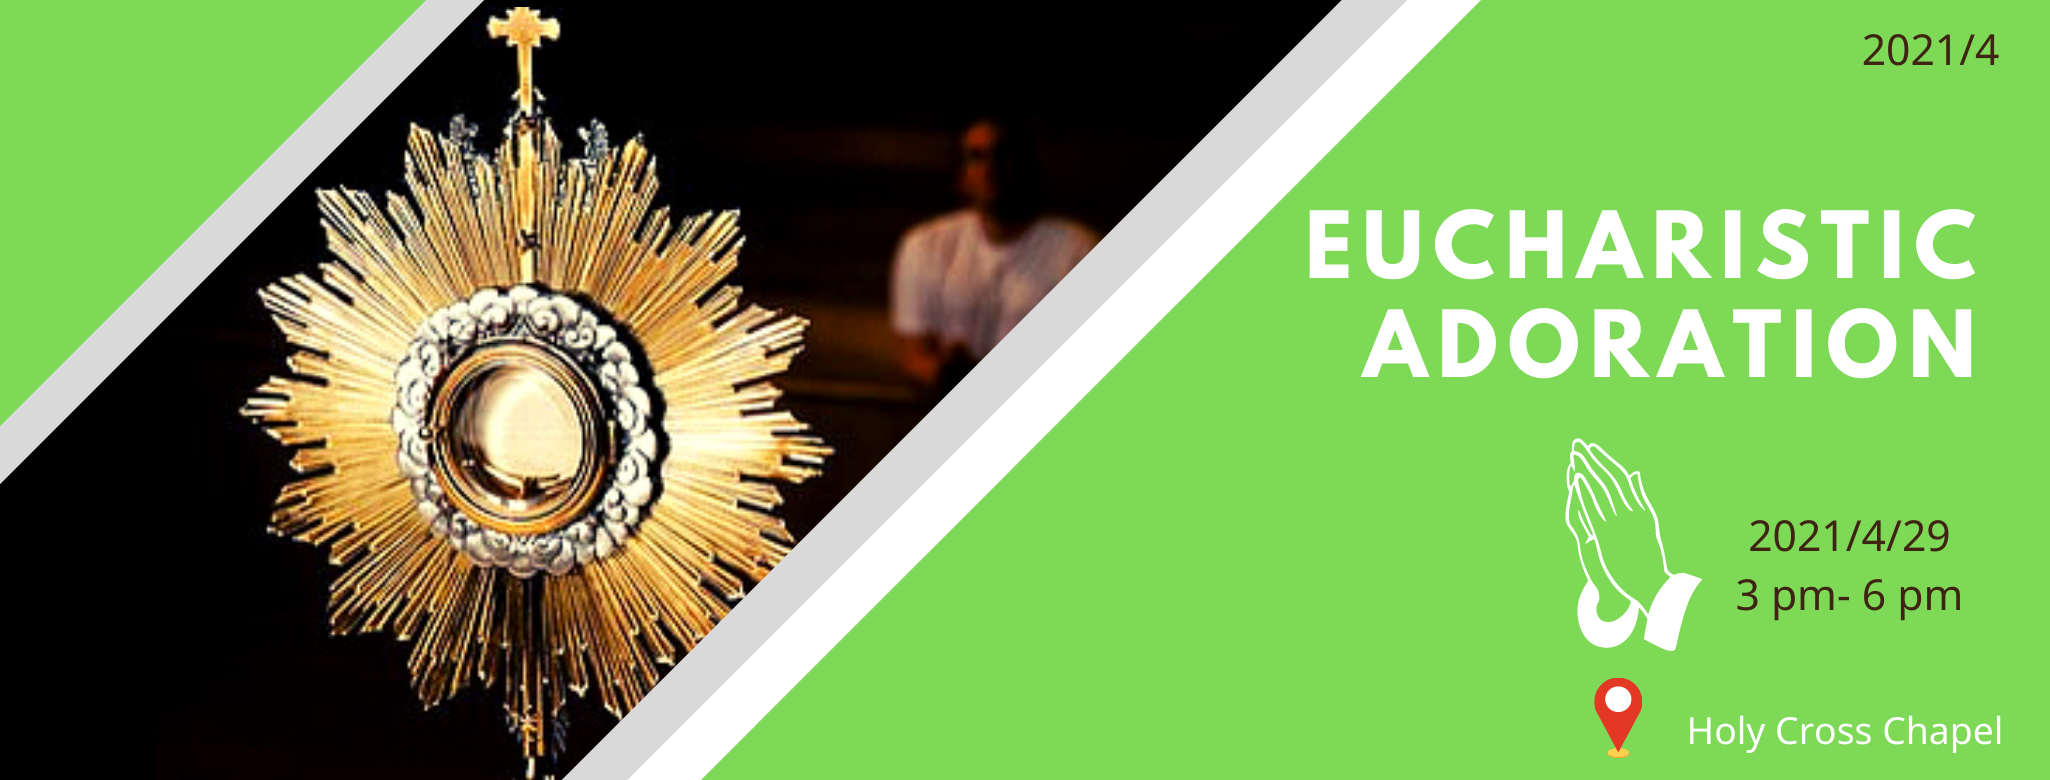 Eucharistic Adoration to be held from three o'clock to six o'clock in the afternoon on the 29th of April 2021 at the Holy Cross Chapel.